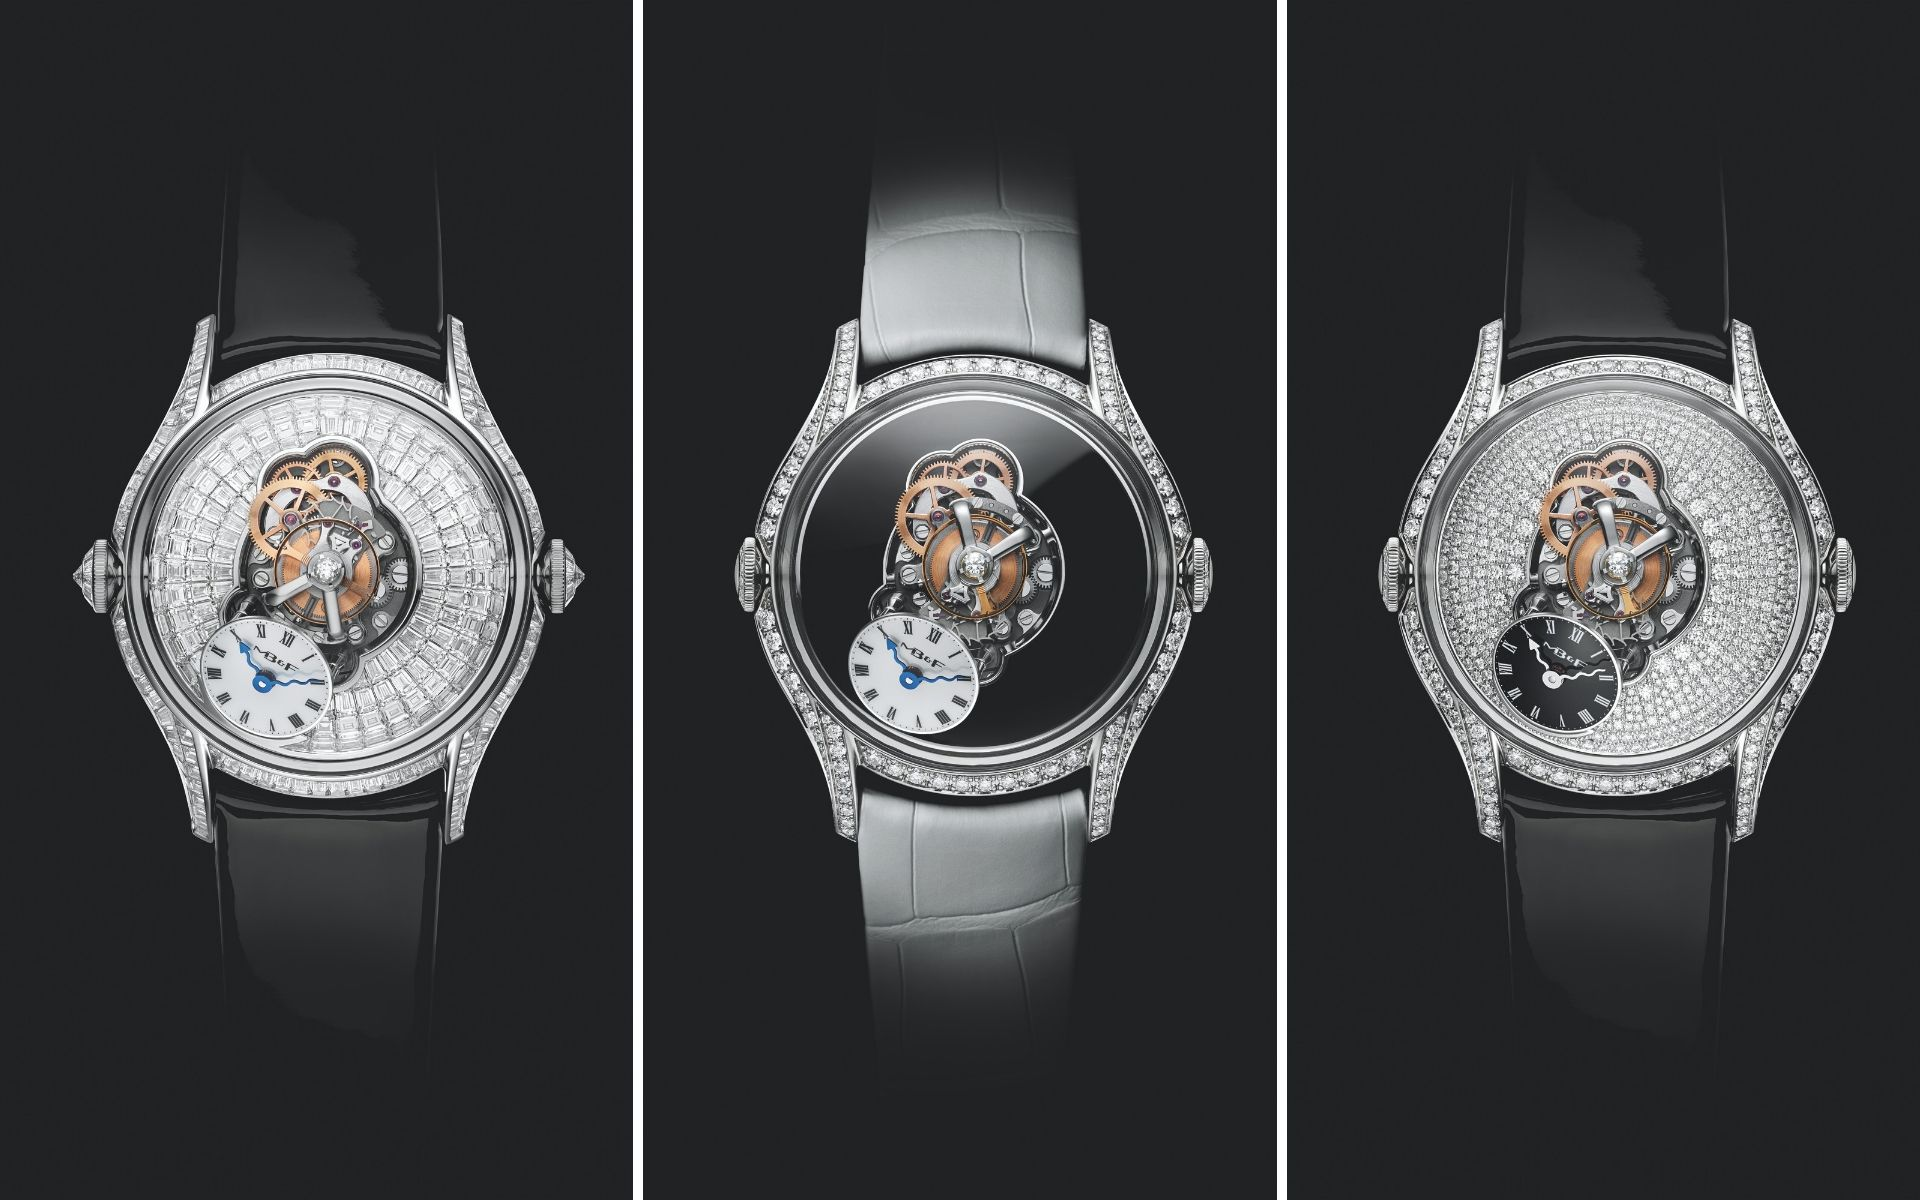 LM FlyingT in fully set baguette diamonds, with black lacquer dial and fully set brilliant cut diamonds